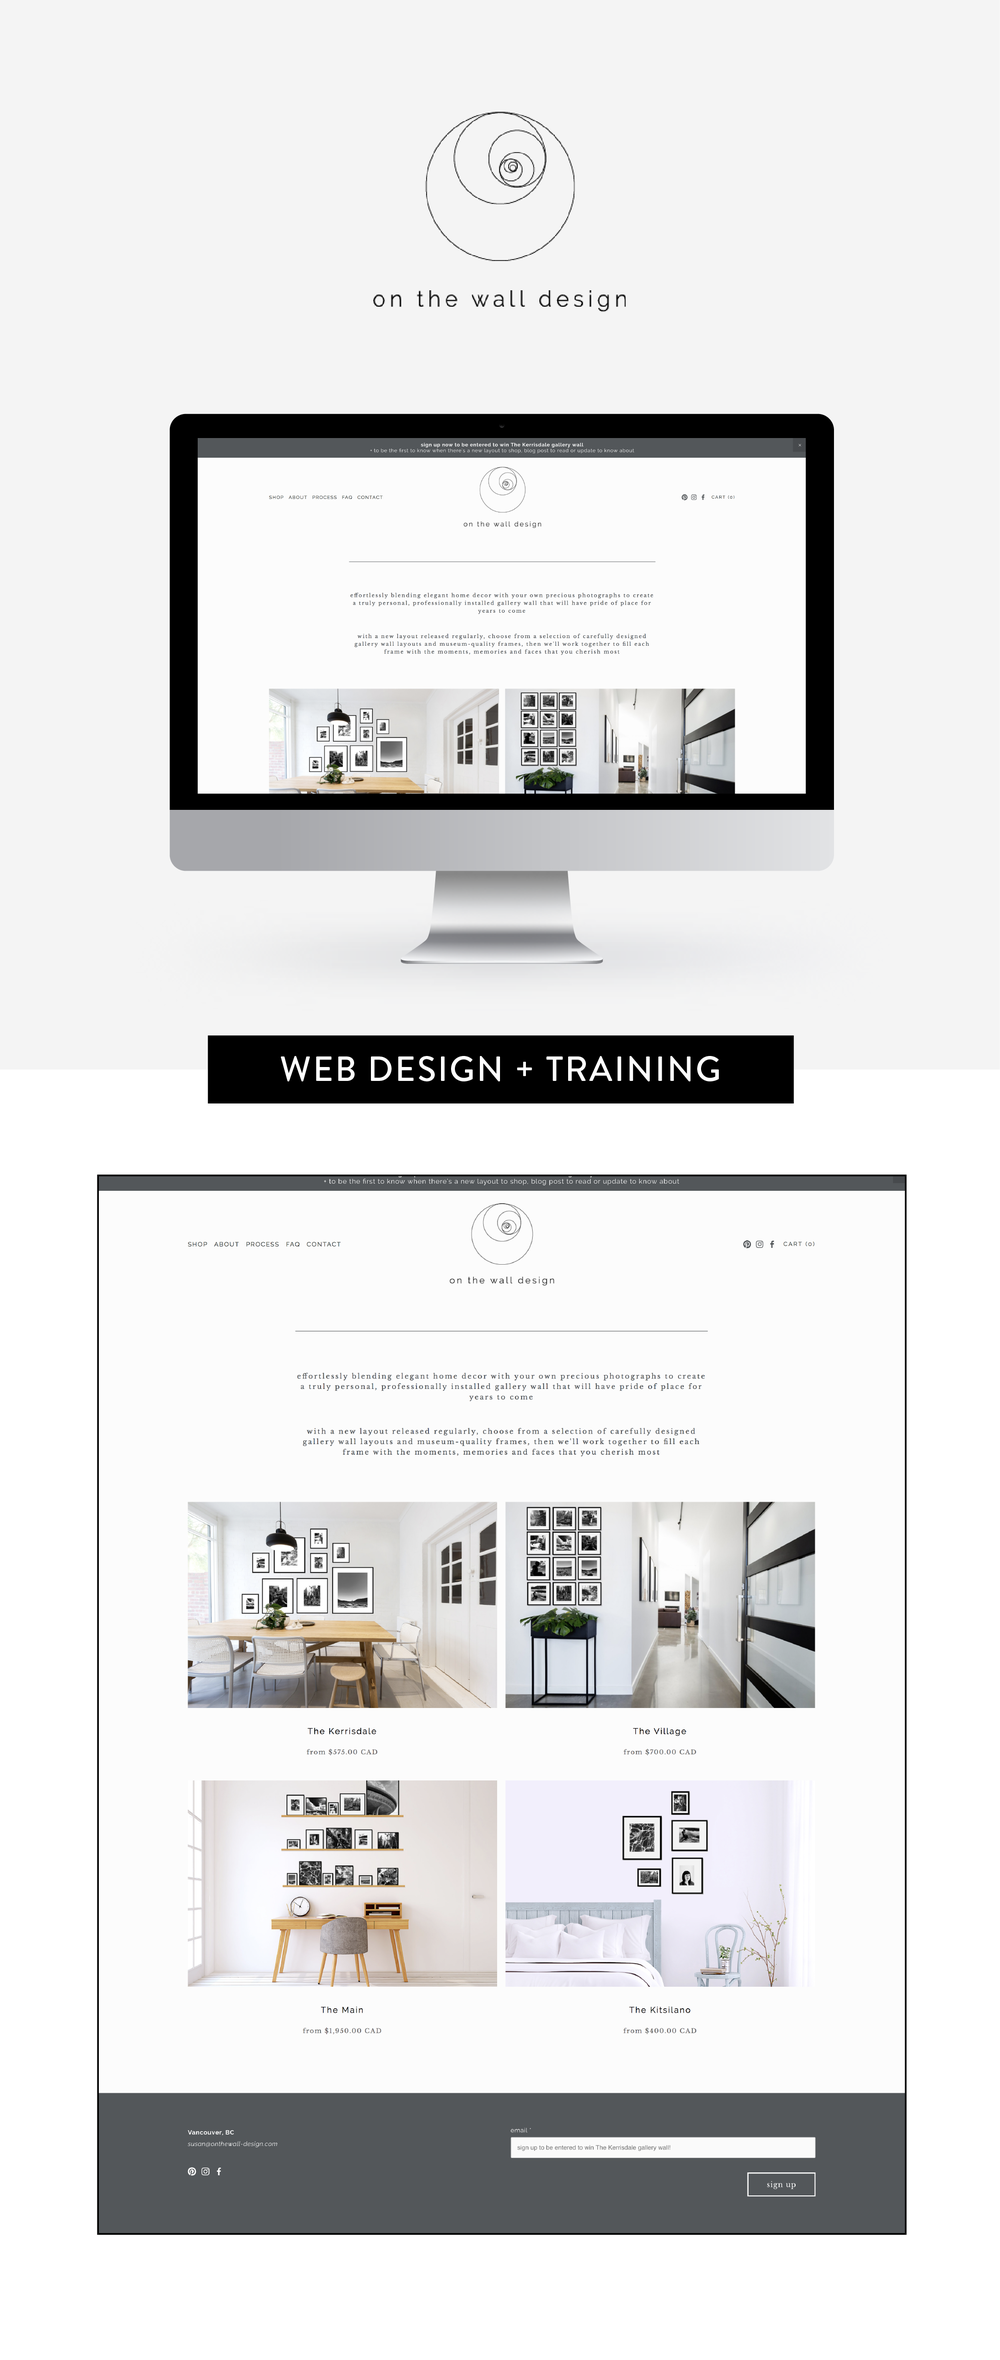 Squarespace design and training for On The Wall Design by Salt Design Co. in Vancouver BC